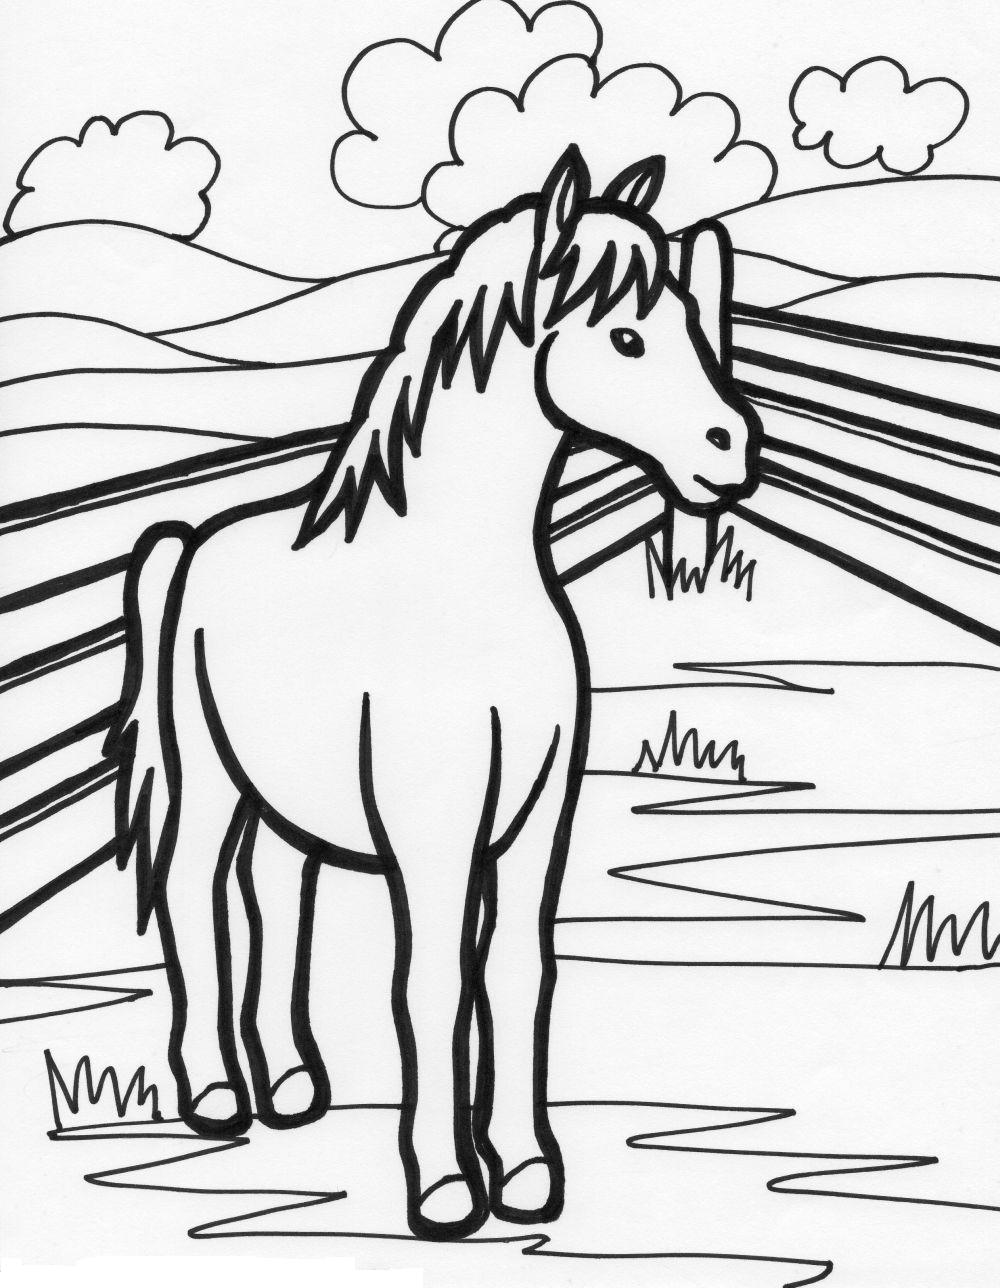 Spring animal coloring pages - Coloring Pages Of Farm Animals For Preschoolers Farm Coloring Pages For Toddlers Farm Animals Free